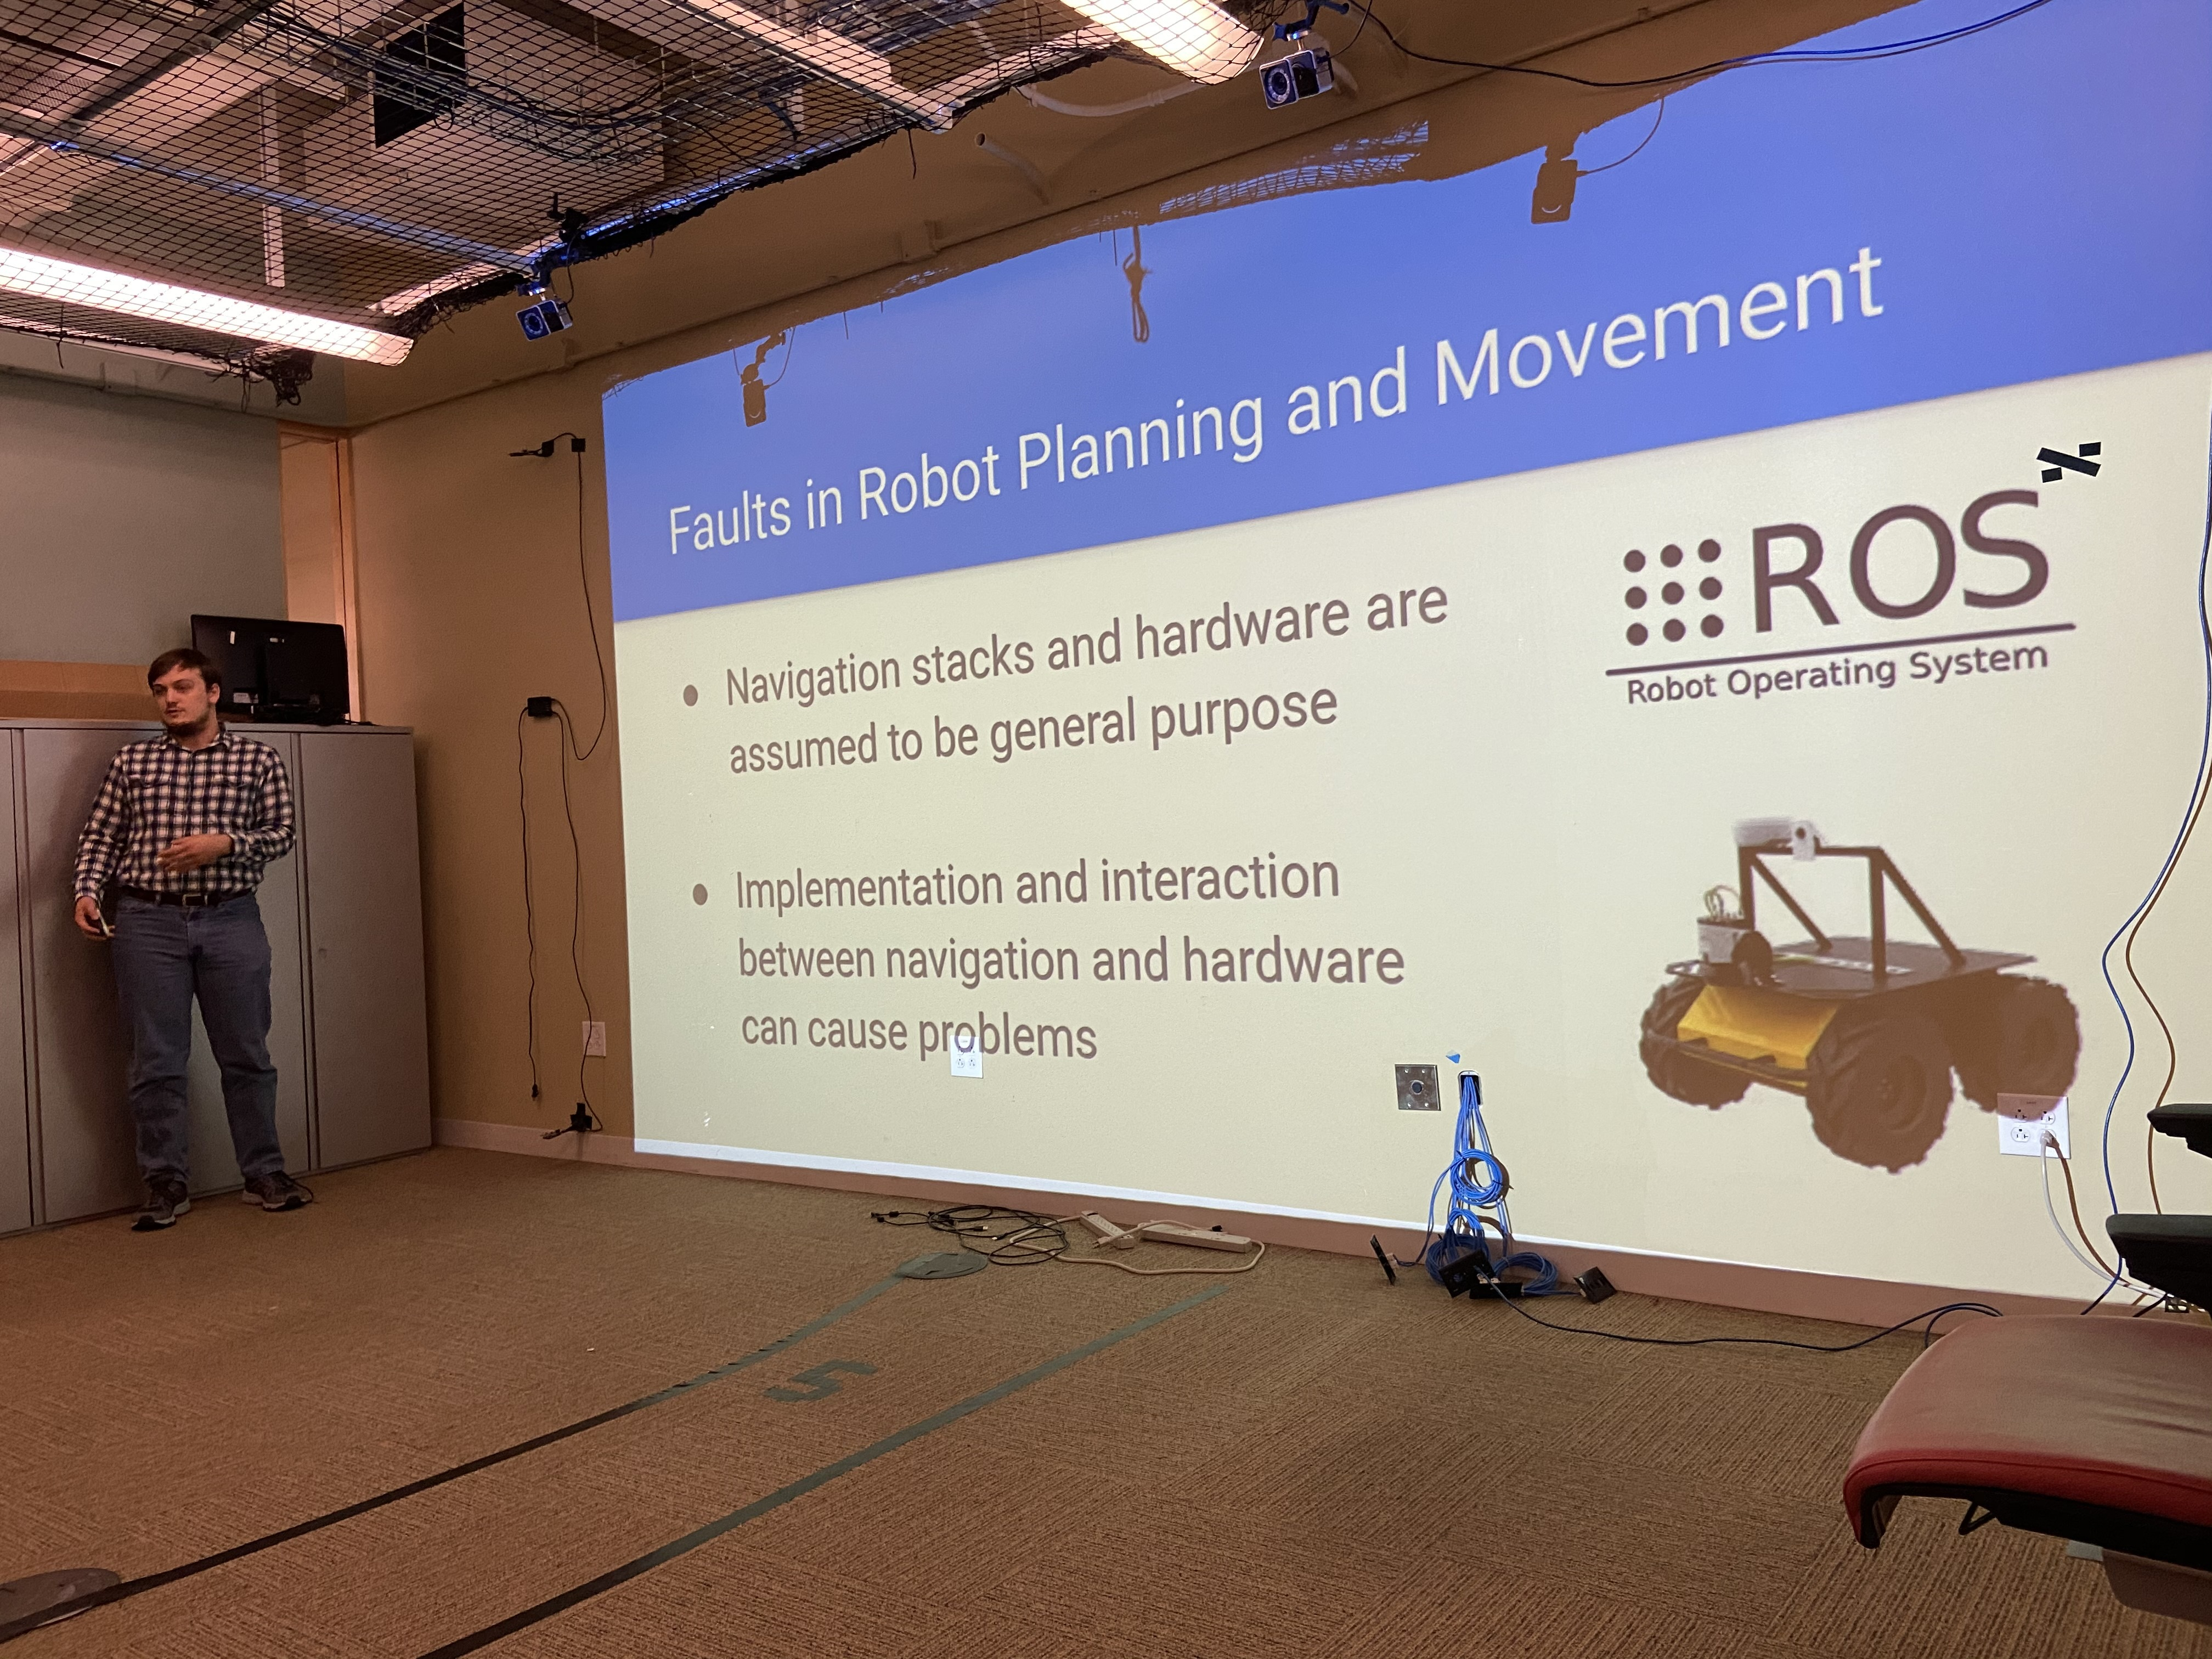 Trey talking about his current work on identifying and predicting faults in robots.